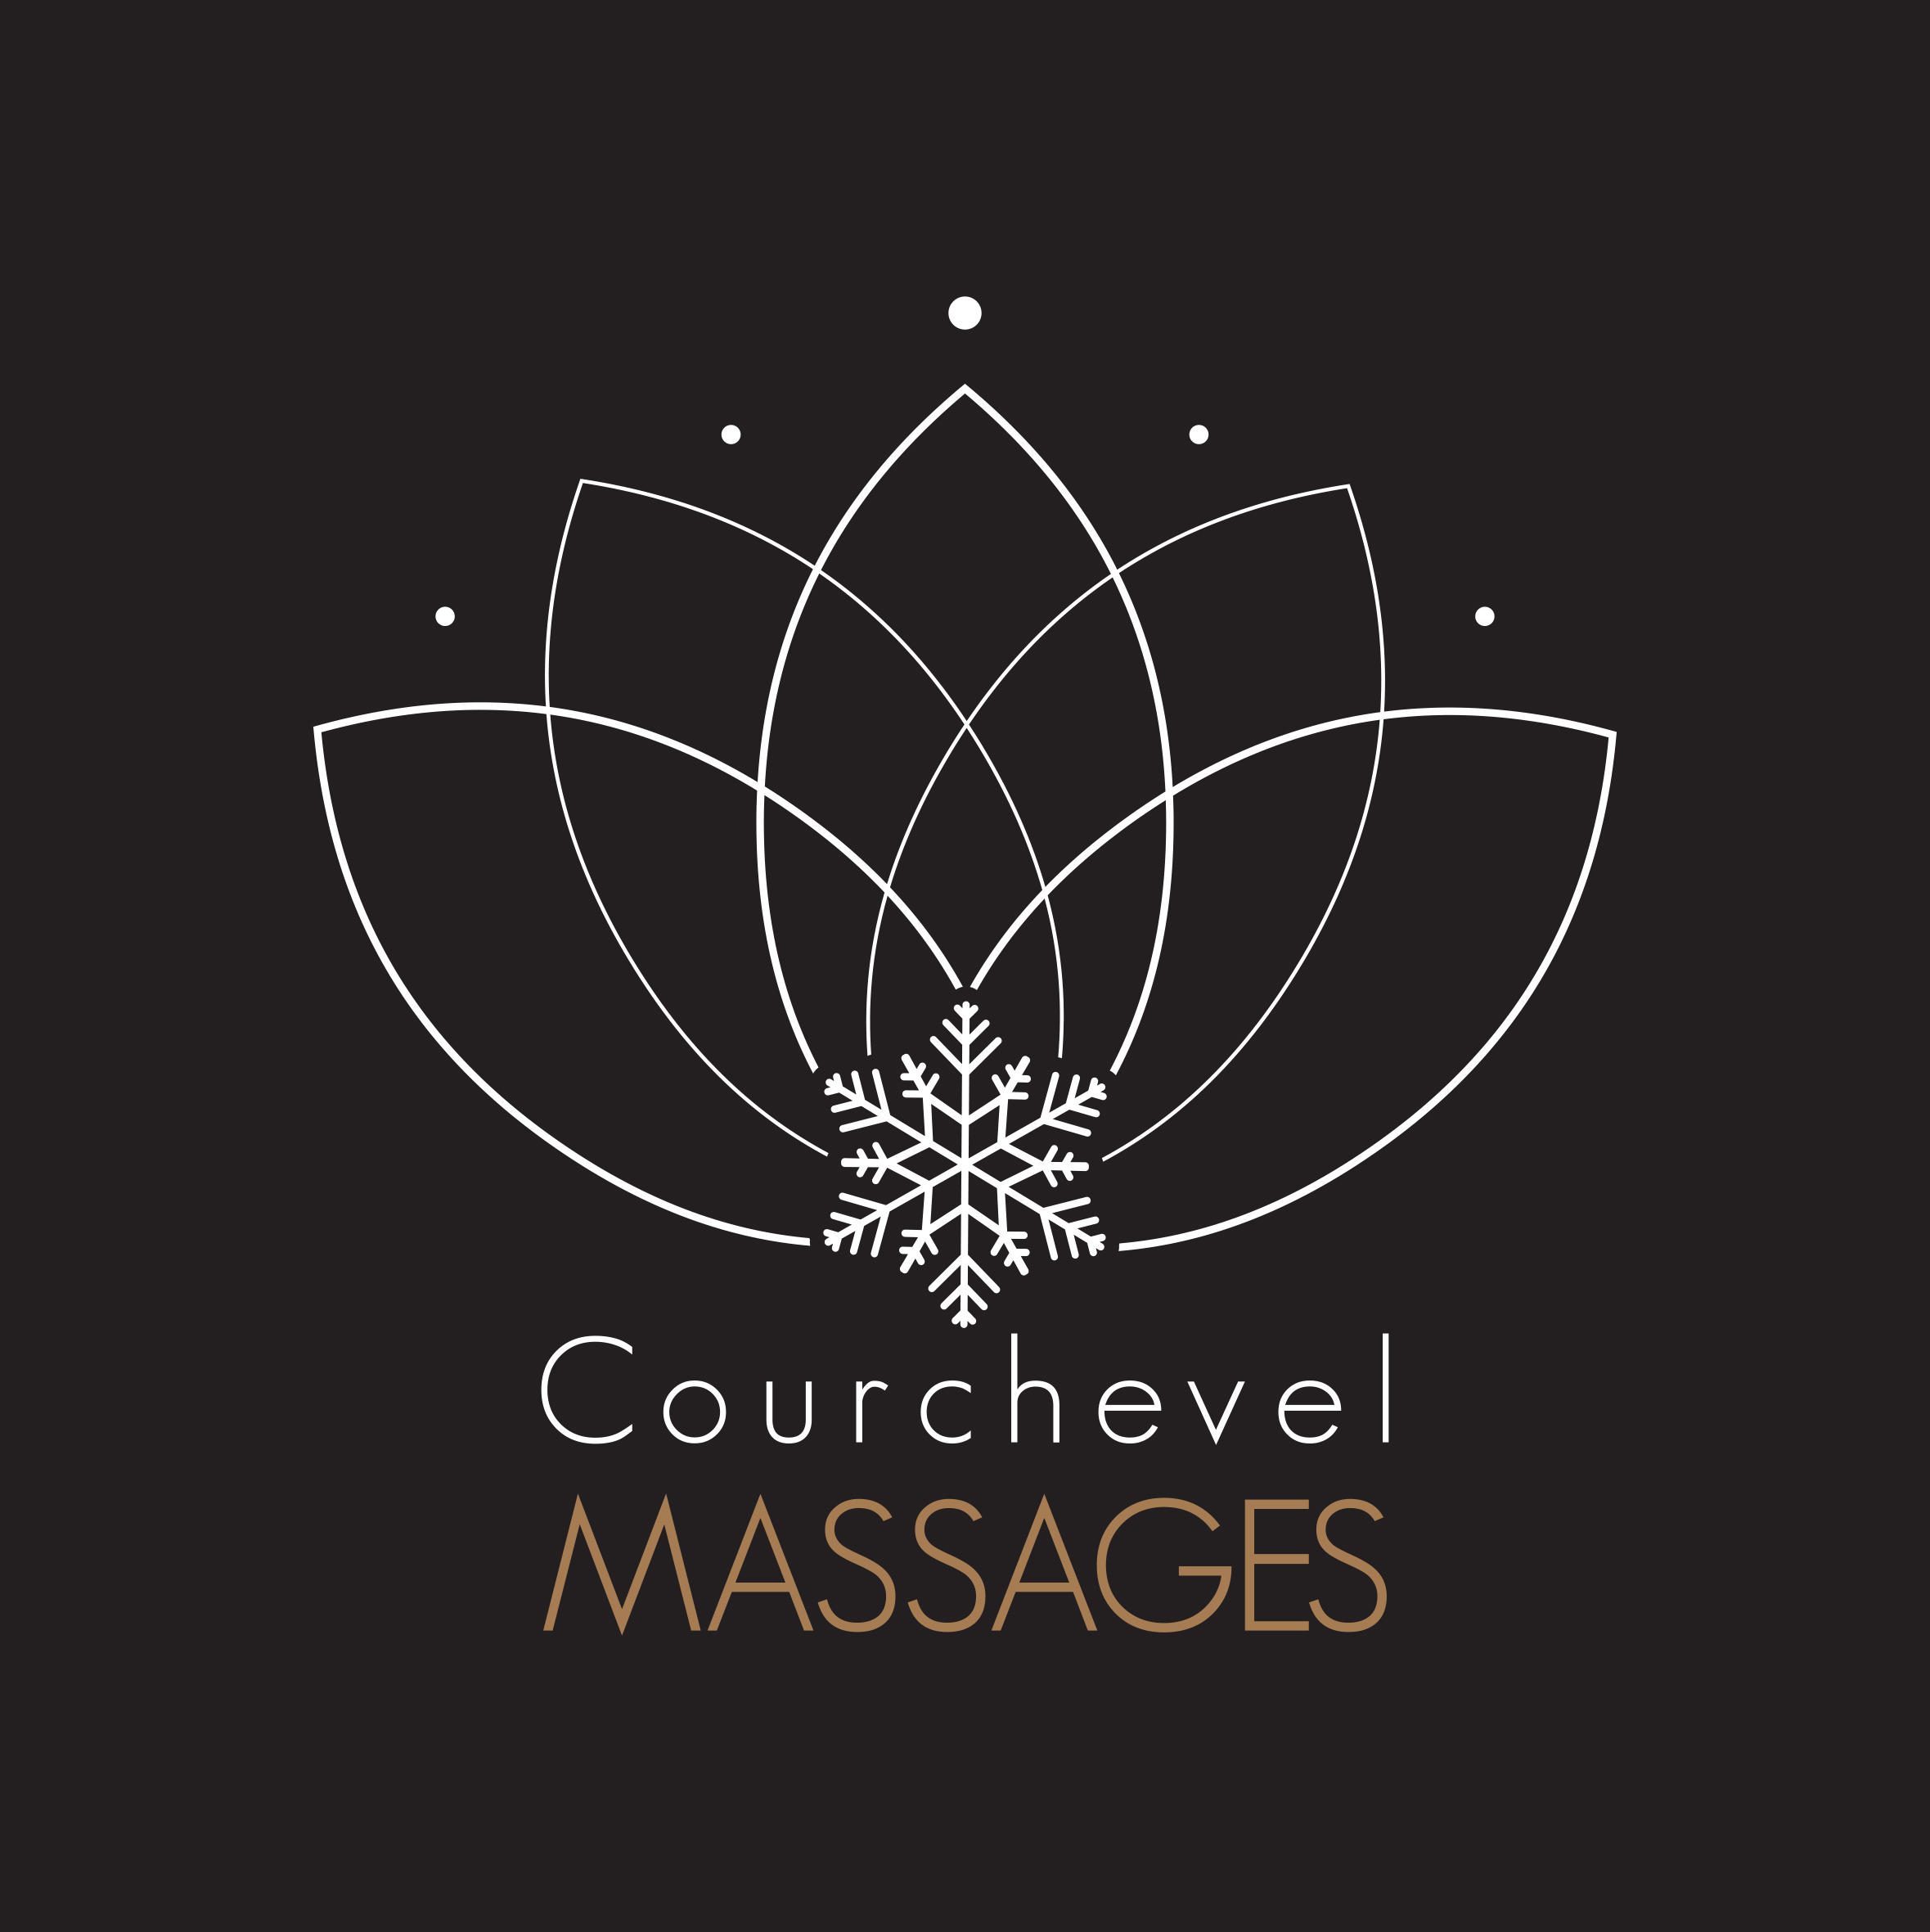 logo Courchevel MASSAGE blanc et or fond